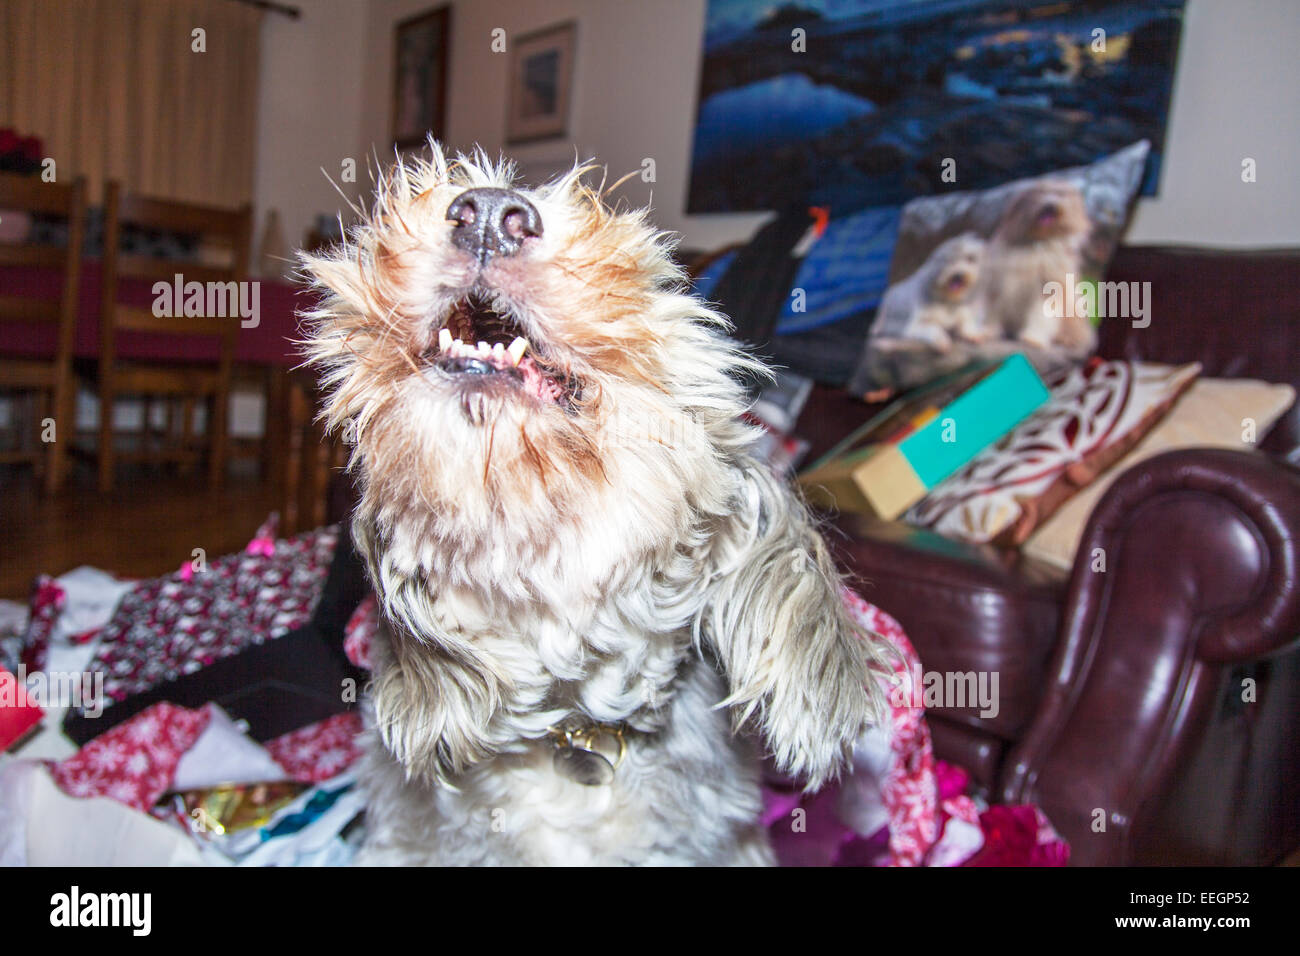 Howling dog mouth open at home barking angry unhappy pet mongrel inside house room kept captured - Stock Image